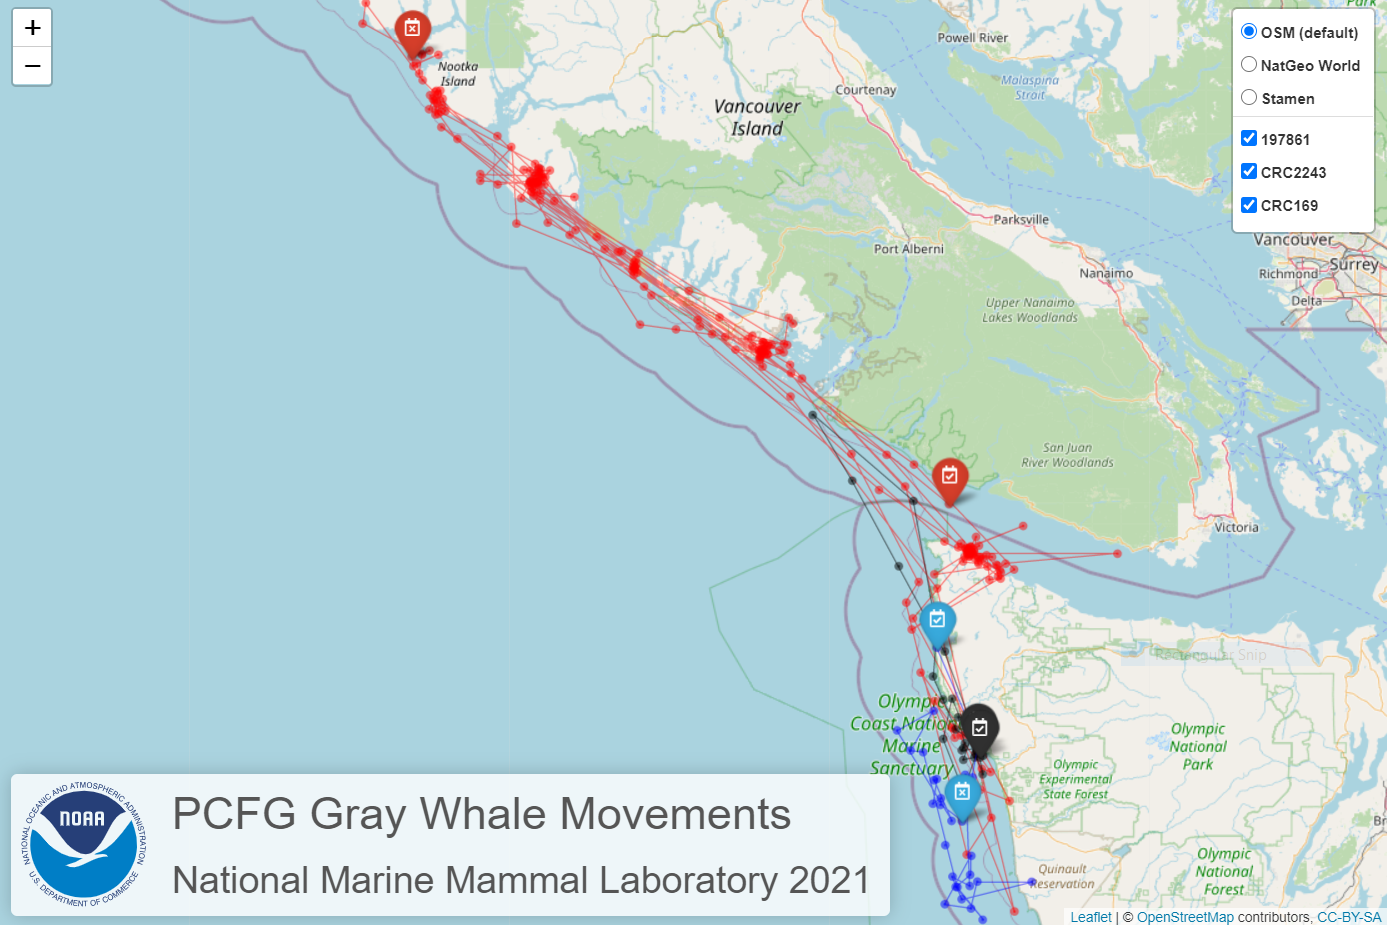 Interactive gray whale tracking map still showing movement tracking of three gray whales off the coast of Washington State and British Columbia, Canada.